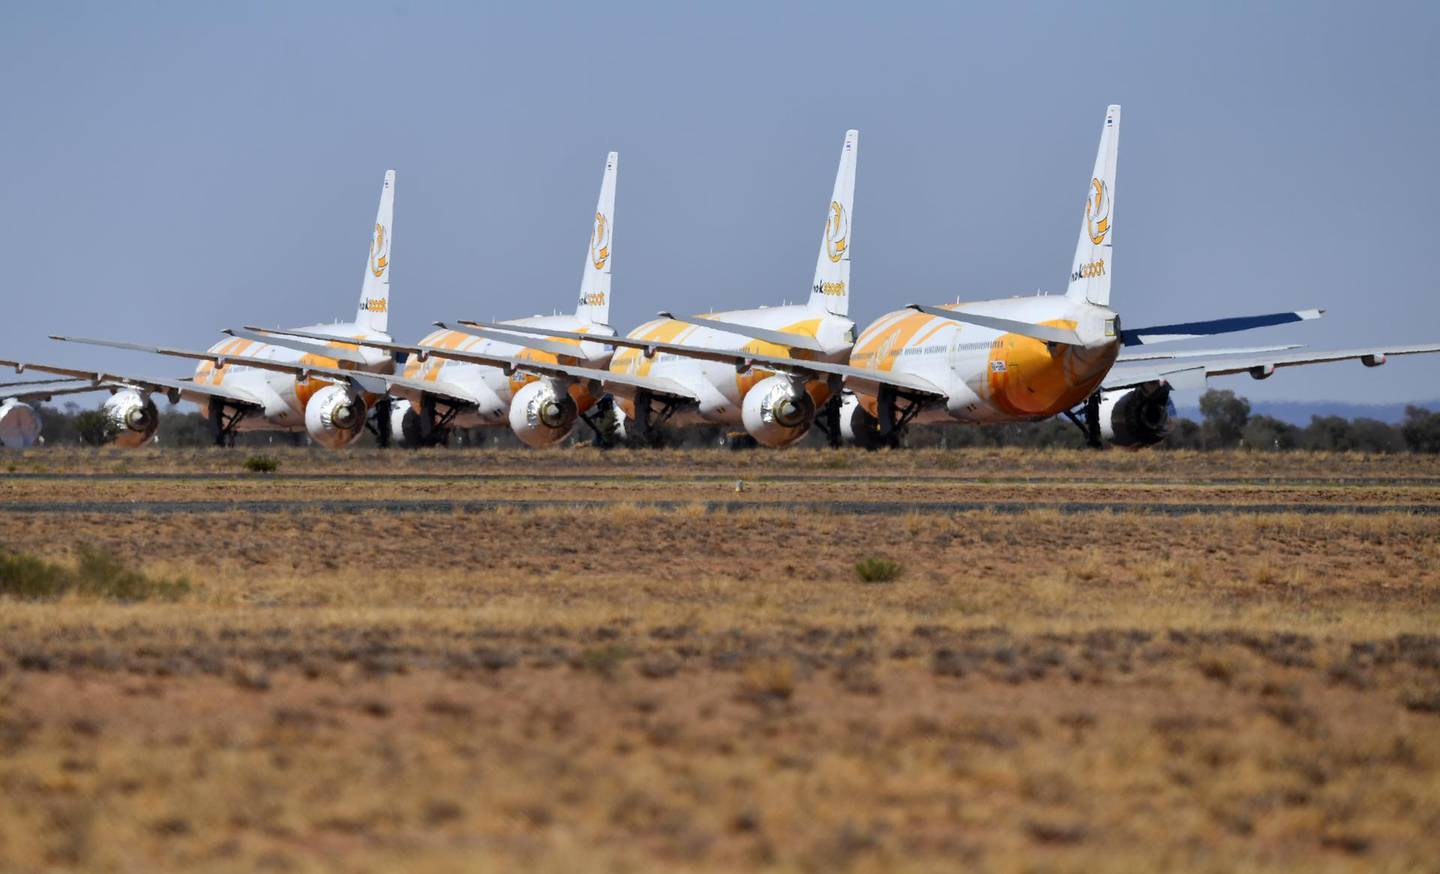 epa08654874 (FILE) - Boeing 787-8 Dreamliner airplanes of Singapore low-cost carrier Scoot Tigerair, grounded due to the Coronavirus (COVID-19) pandemic, are parked at the Asia Pacific Aircraft Storage facility in Alice Springs, Australia, 30 August 2020 (reissued 08 September 2020). US airplane manufacturer Boeing on 08 September 2020 announced that problems with the horizontal stabililzer are another issue slowing down the deliveries of the Dreamliner.  EPA/DARREN ENGLAND AUSTRALIA AND NEW ZEALAND OUT *** Local Caption *** 56307049